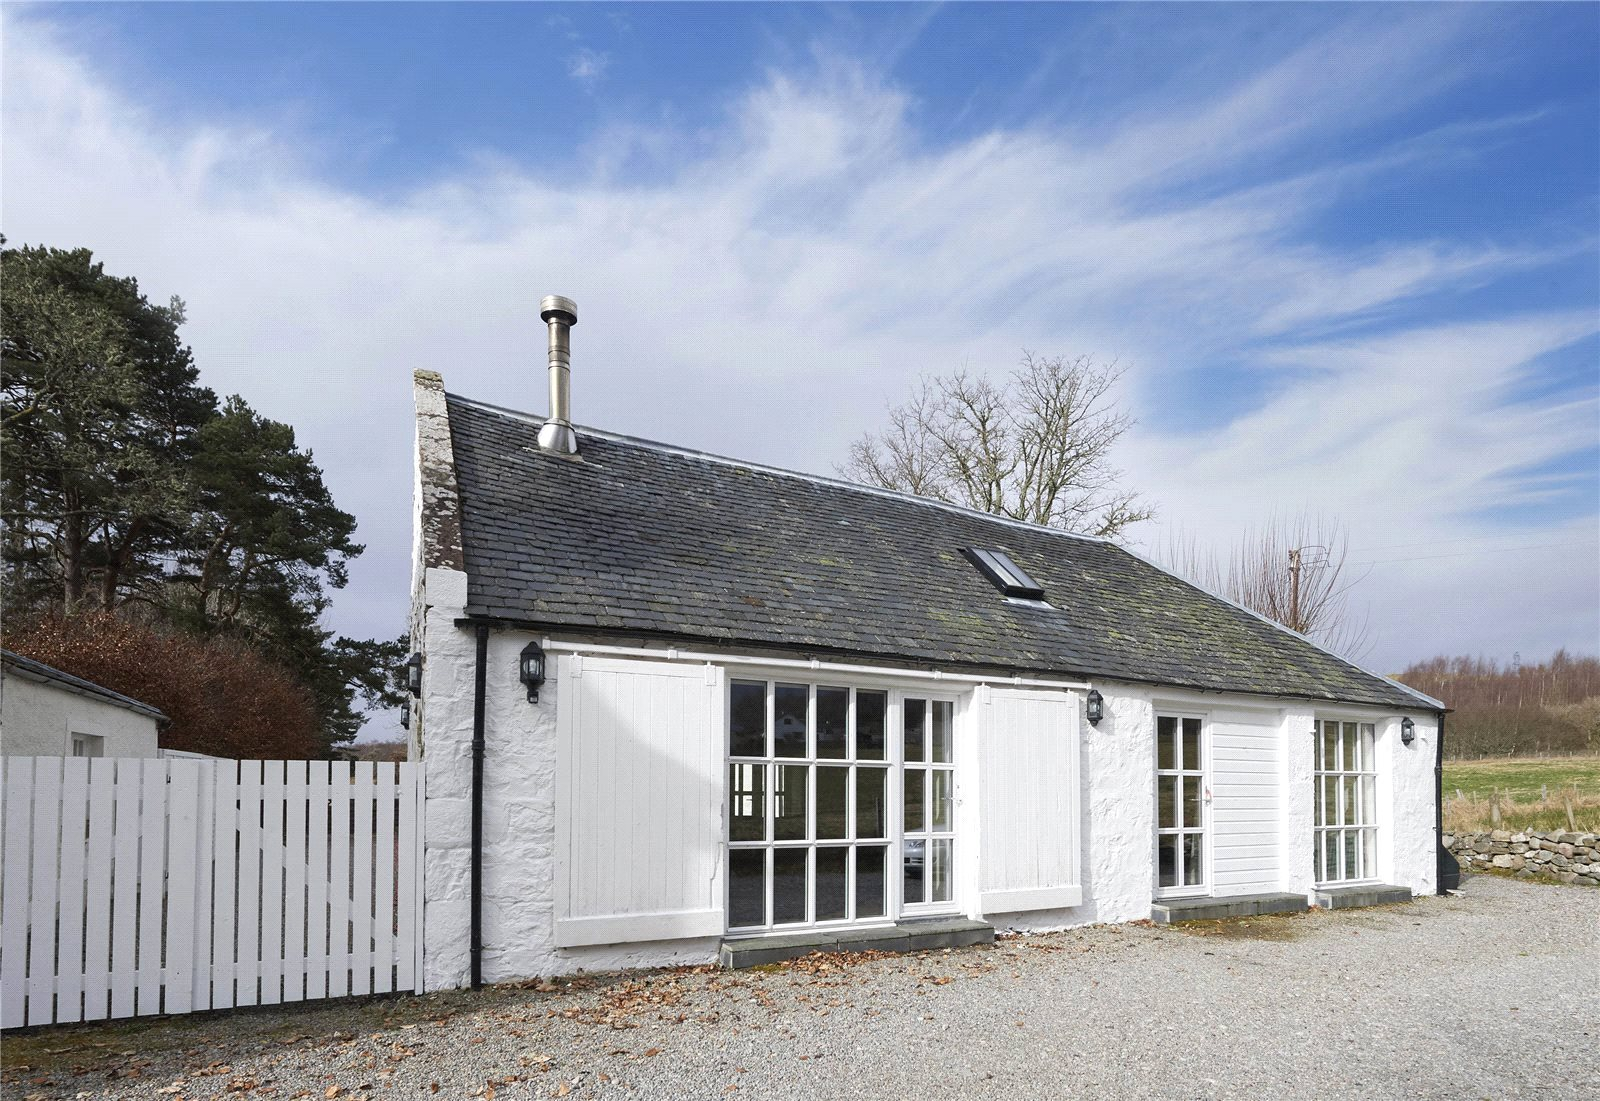 2 Bedrooms Detached House for sale in Kilmorack Cottage, Lot 2, Kilmorack, Beauly, IV4